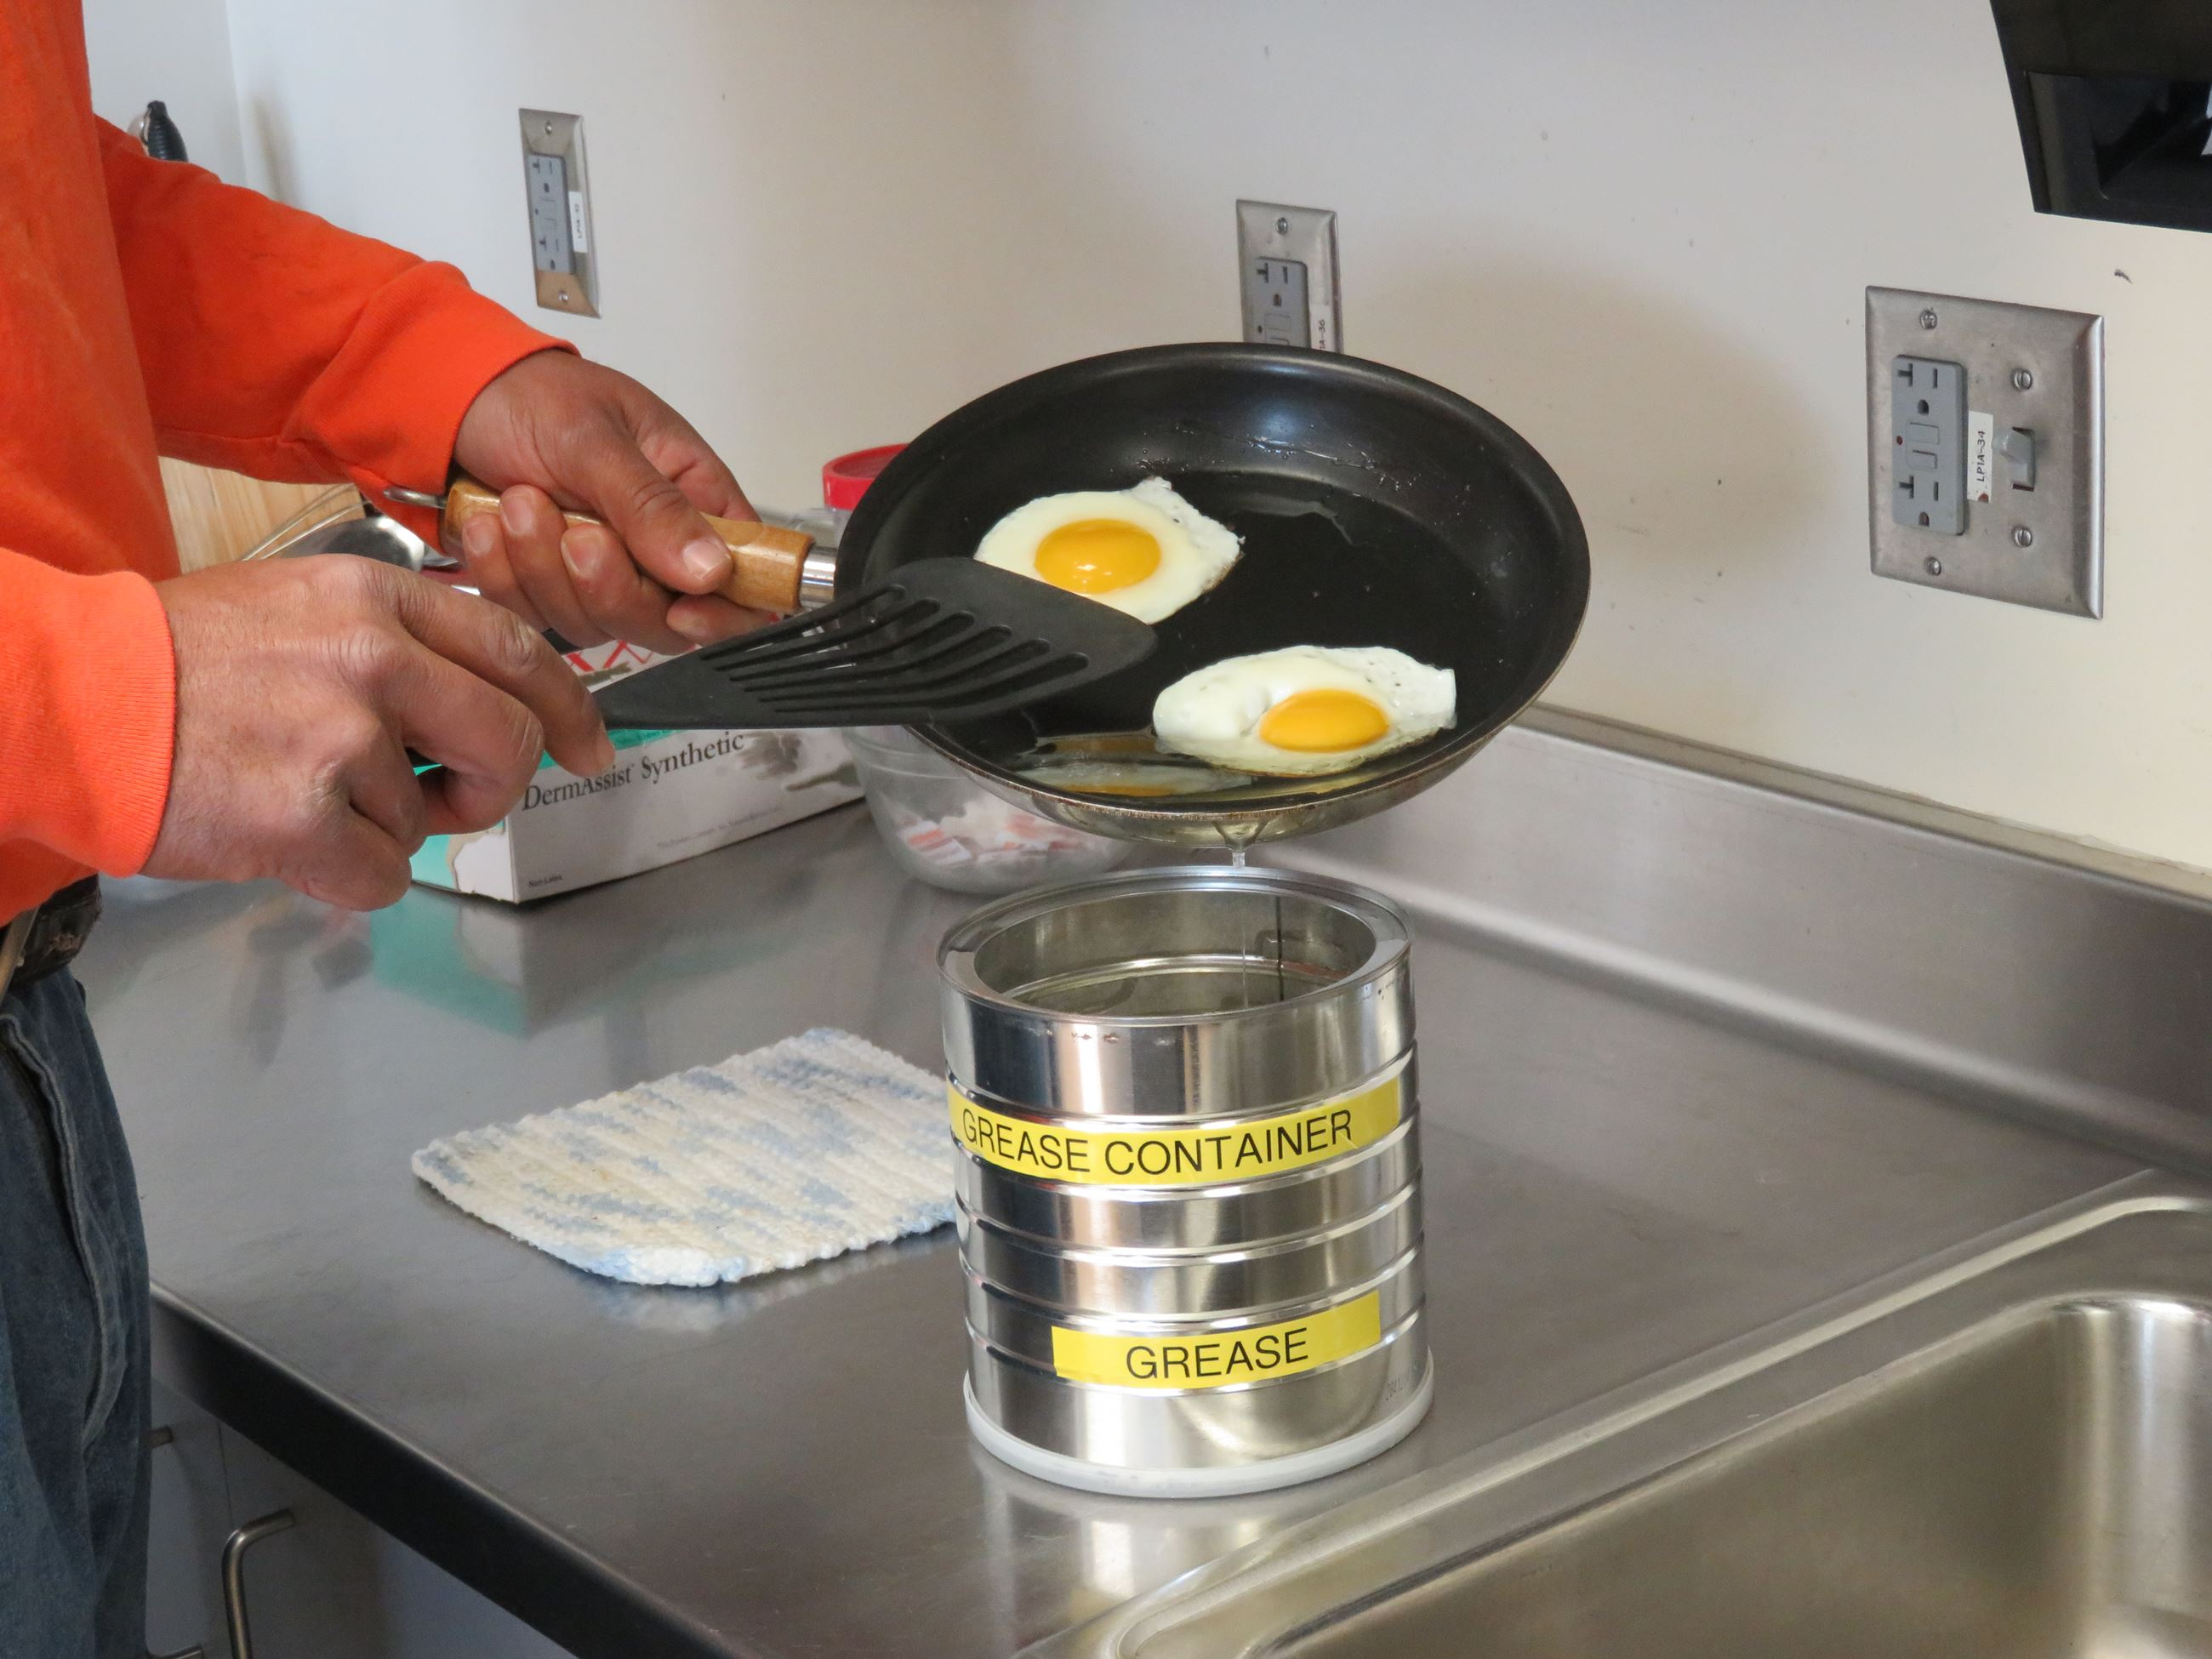 Person putting grease from frying eggs into a coffee can-sized collection container.